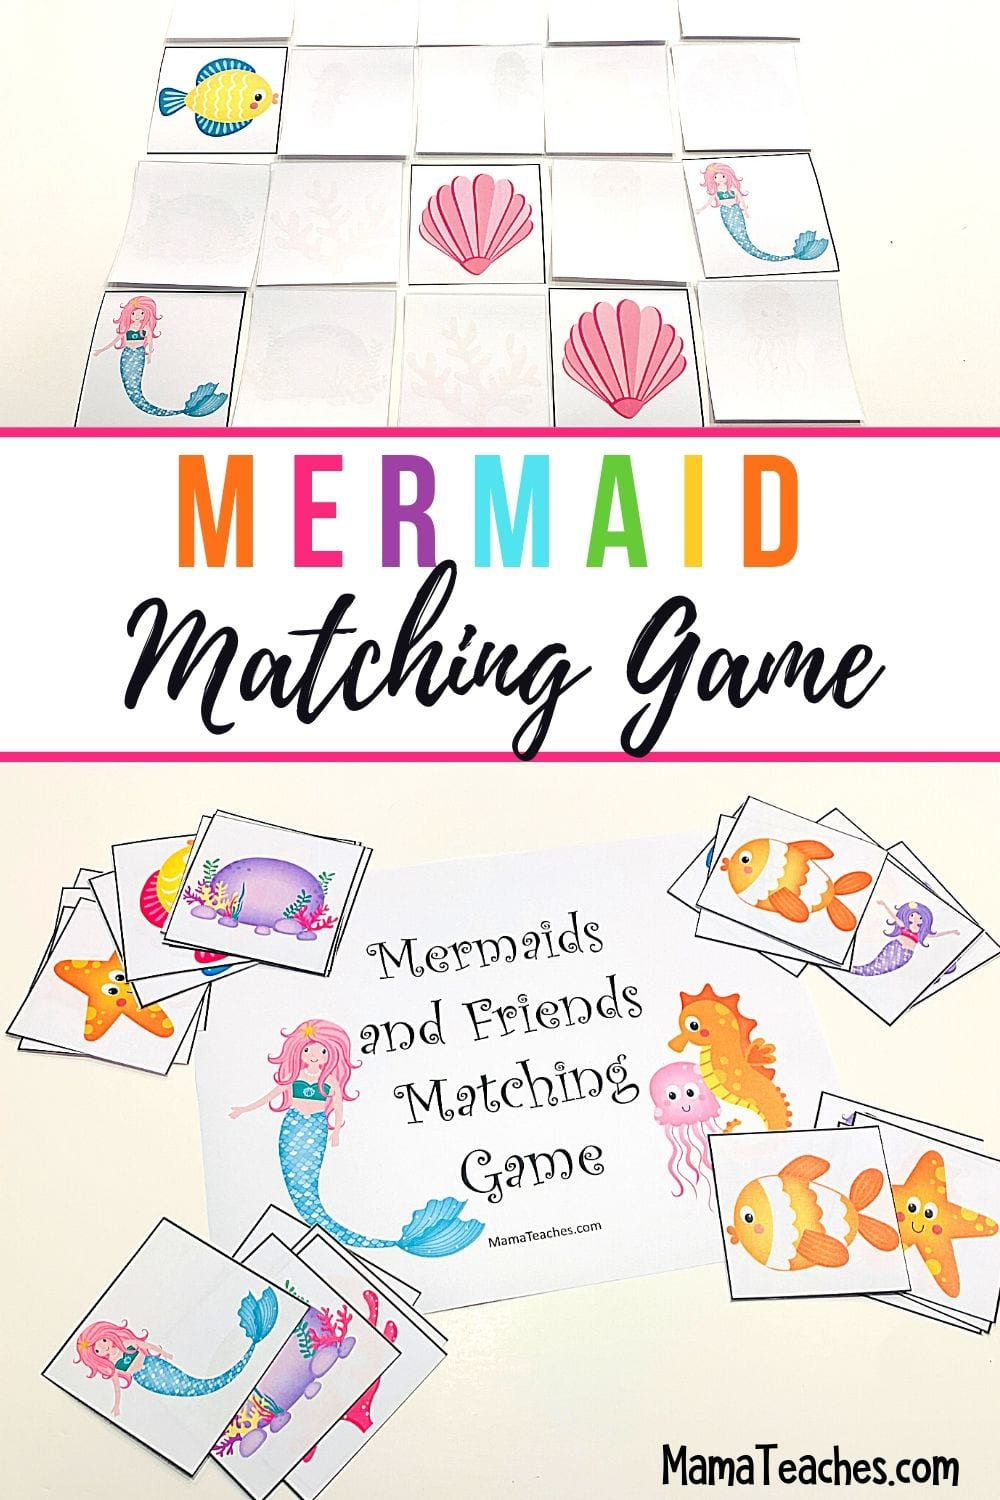 Mermaid Matching Game Freebie - a Printable Memory match Game for Kids from MamaTeaches.com